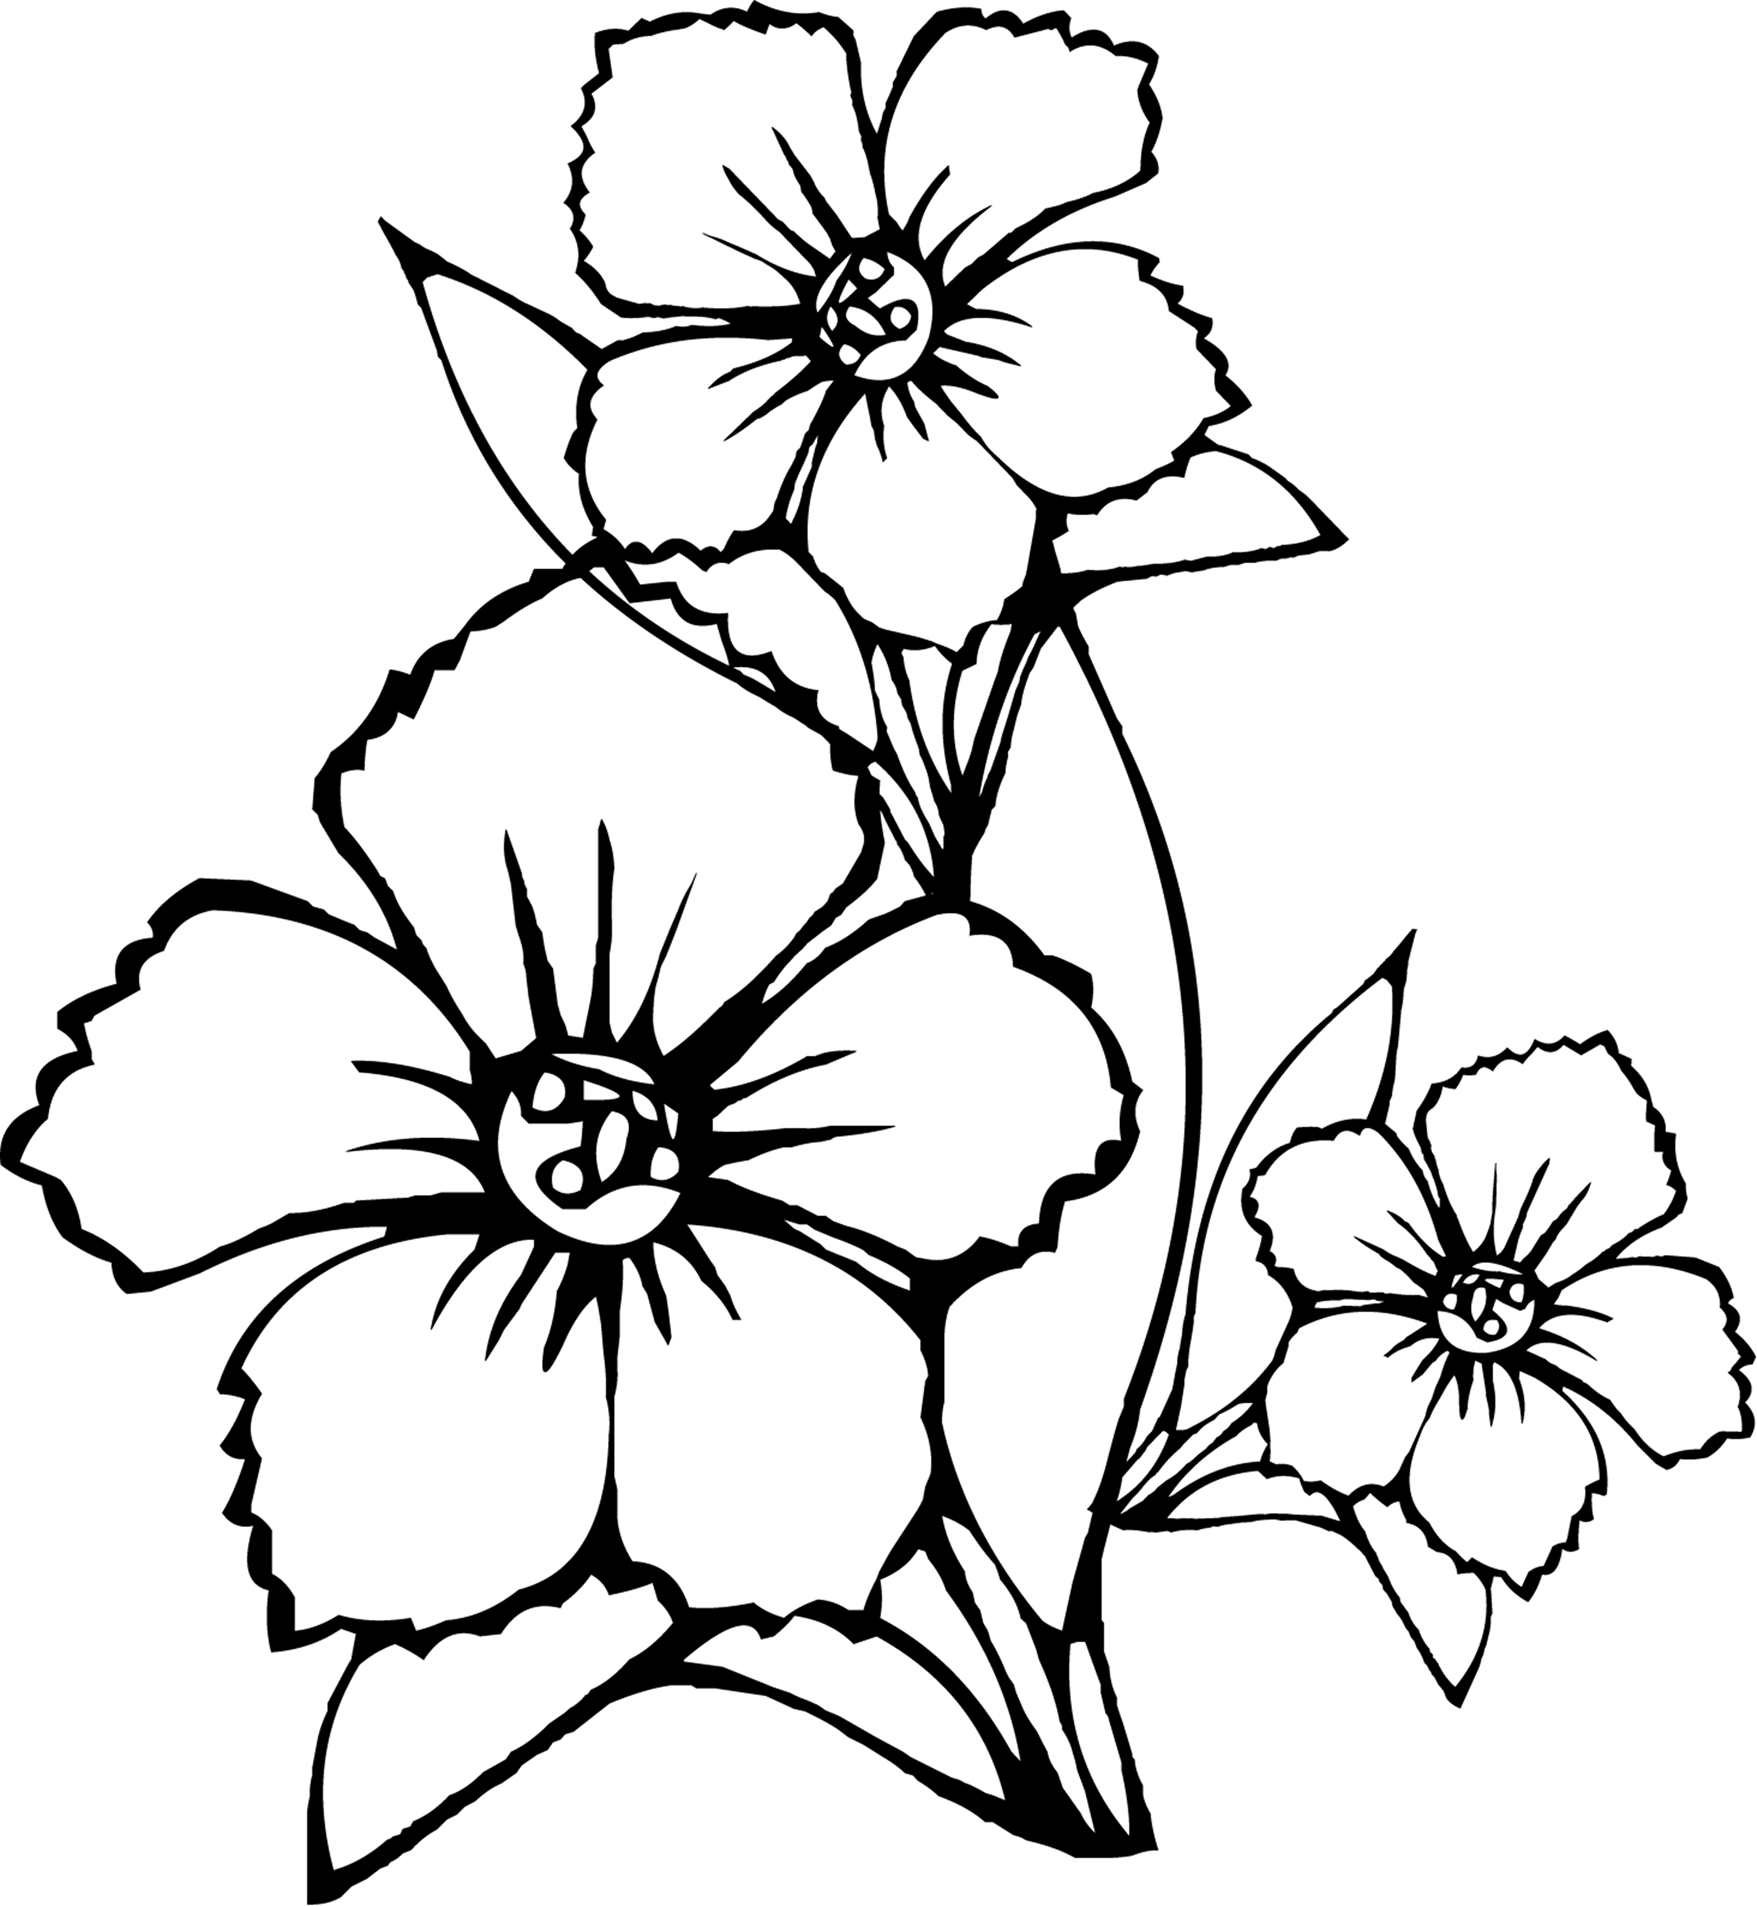 Colouring in pictures of flowers - Coloring Flowers